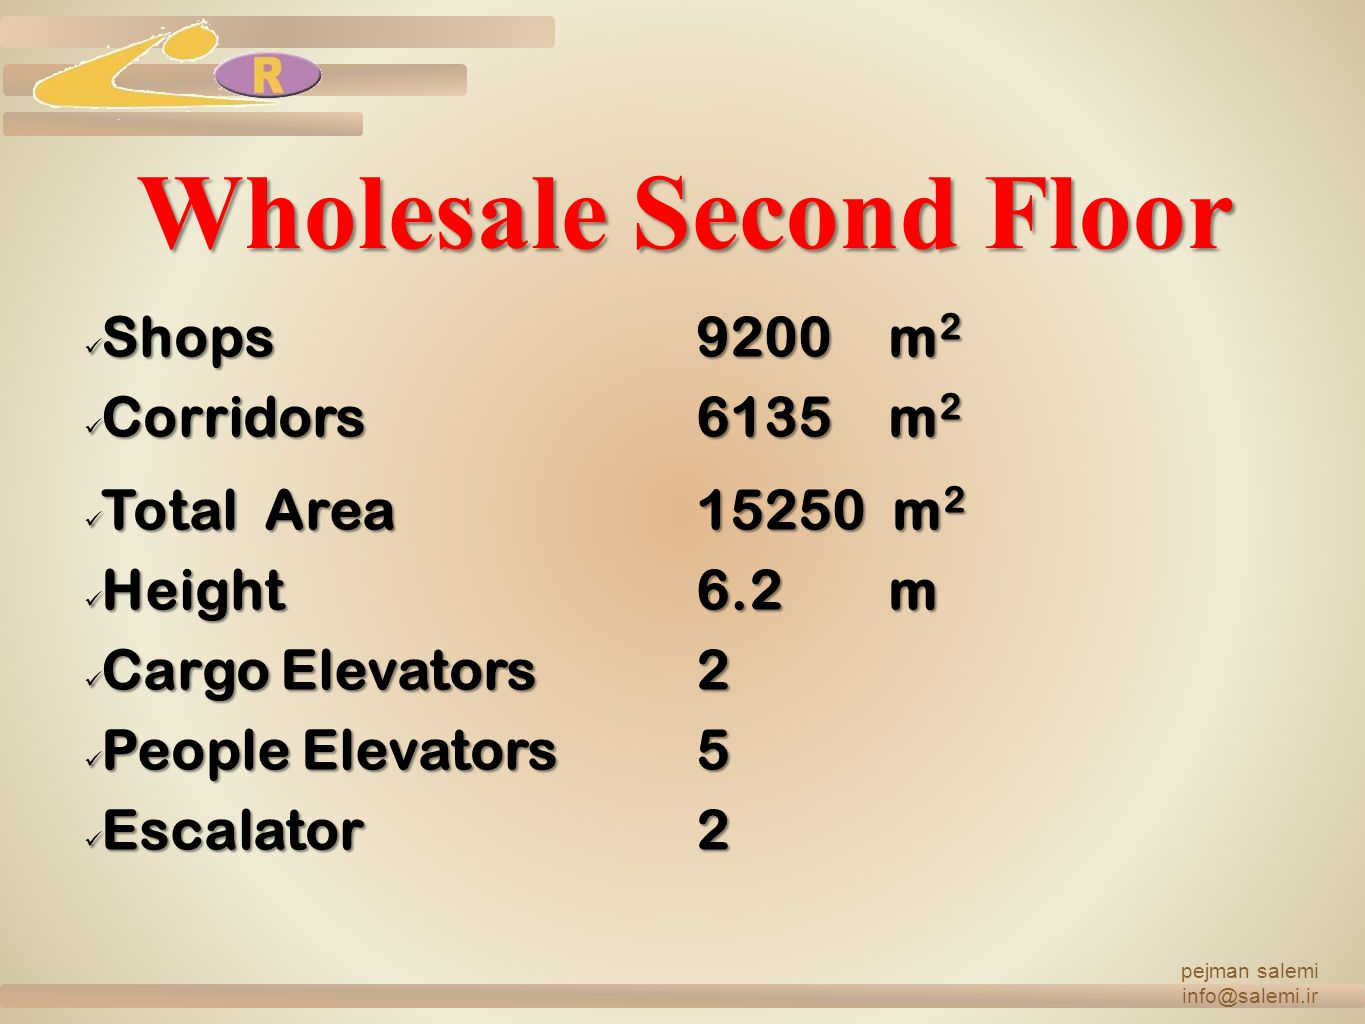 Wholesale Second Floor